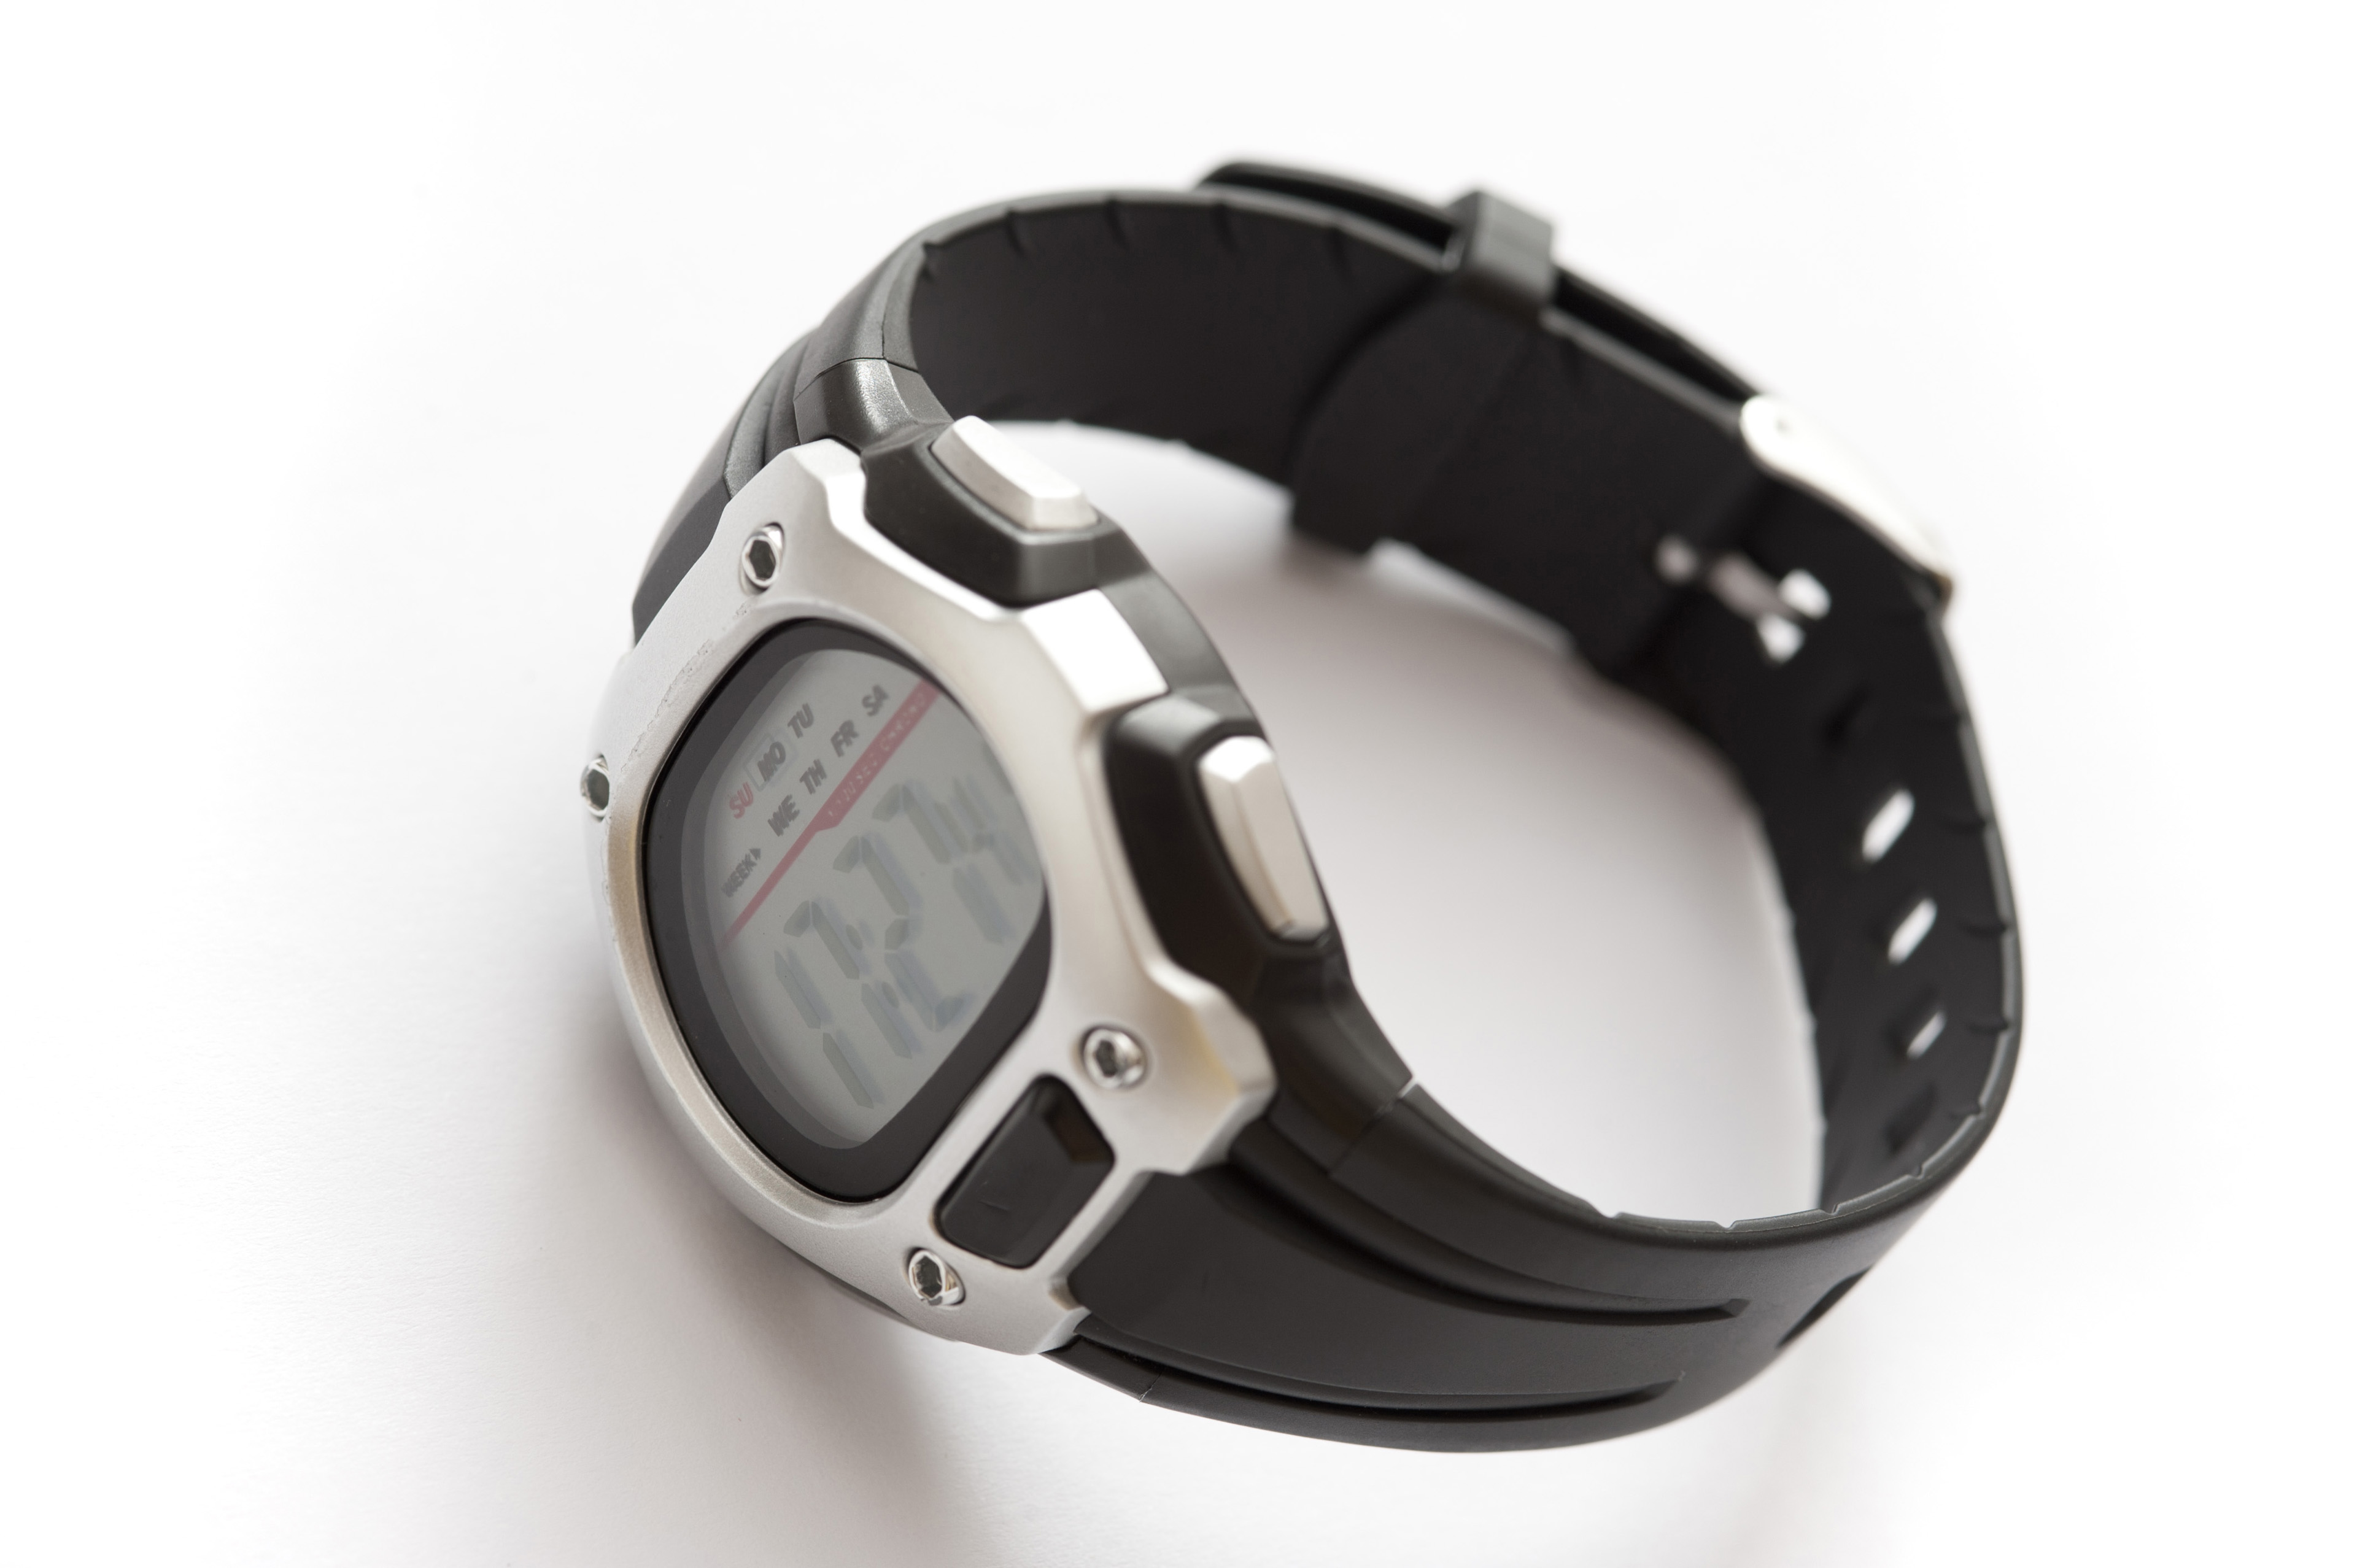 Close up Digital Black and Gray Unisex Sports Wristwatch Isolated on White Background